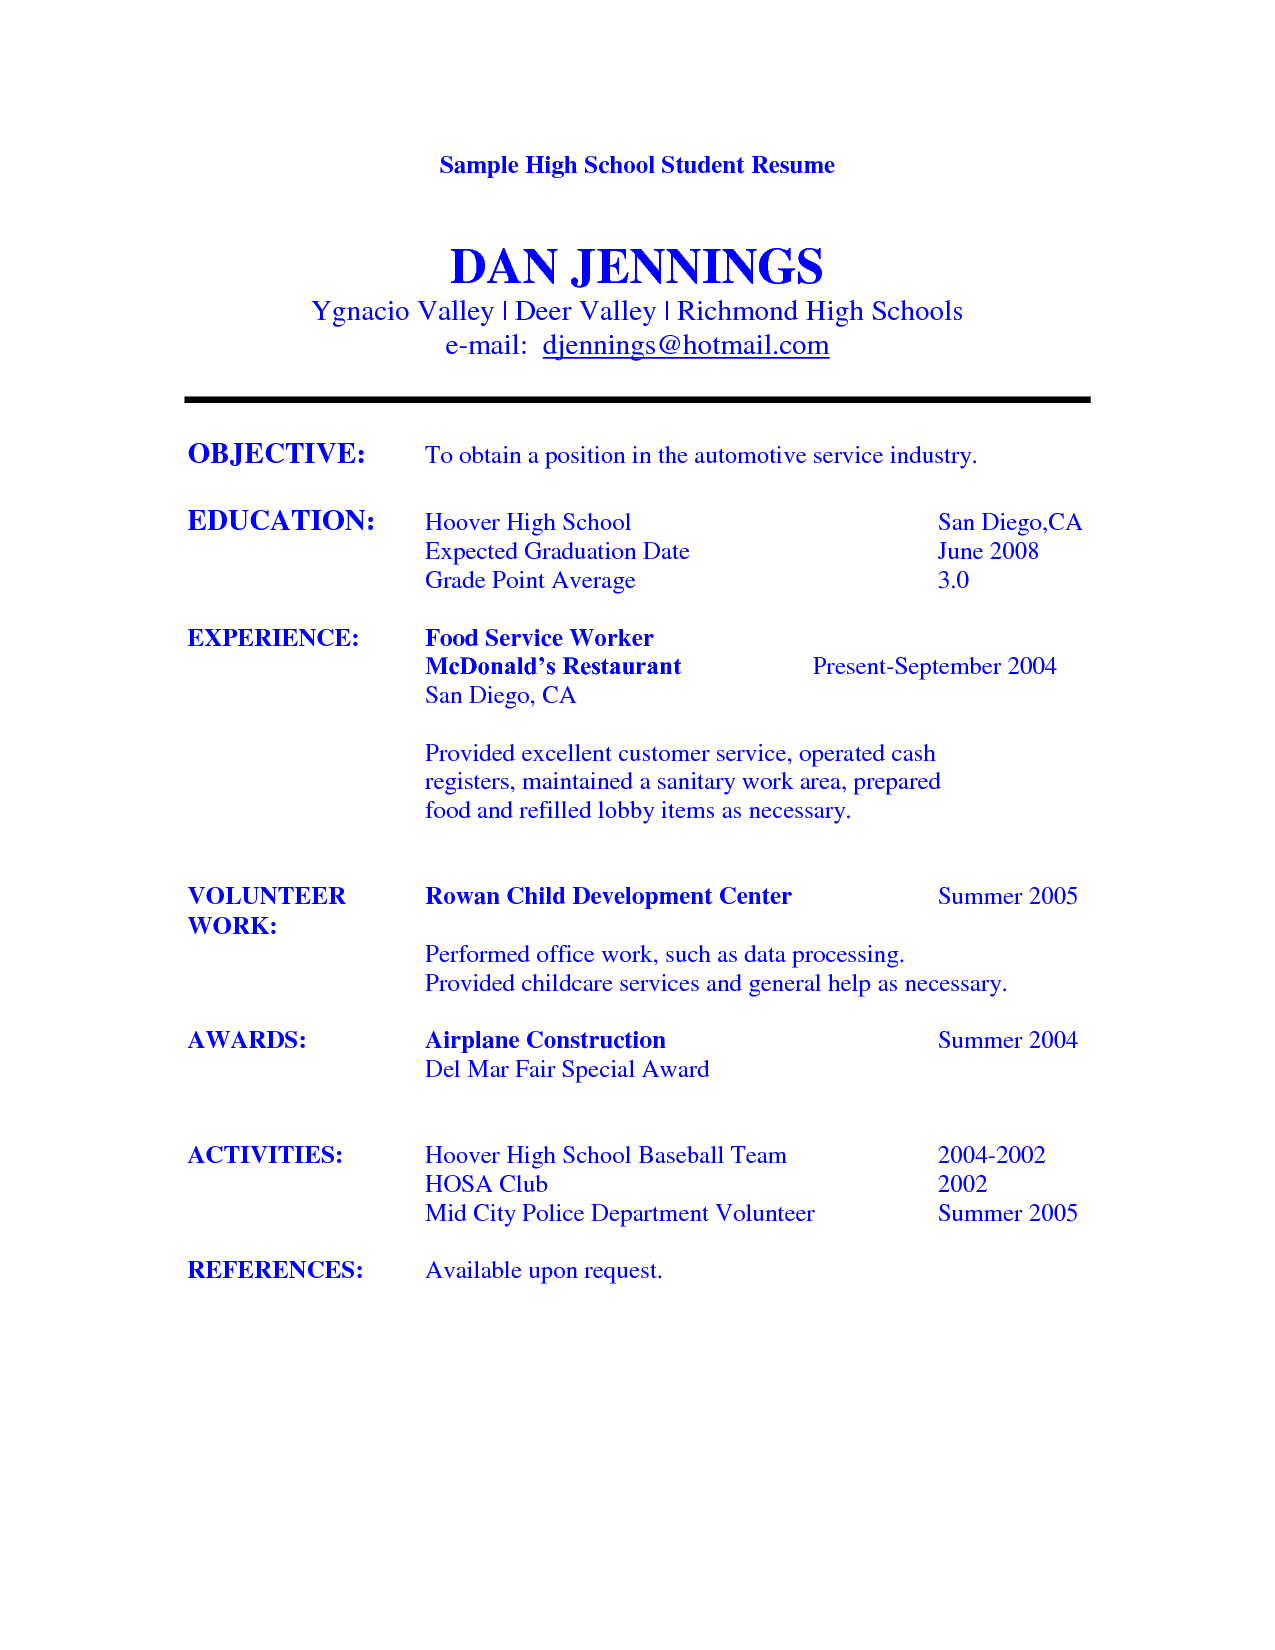 Resume Education Example Best Resume Example For High School Student Sample Resumes  Httpwww Design Ideas